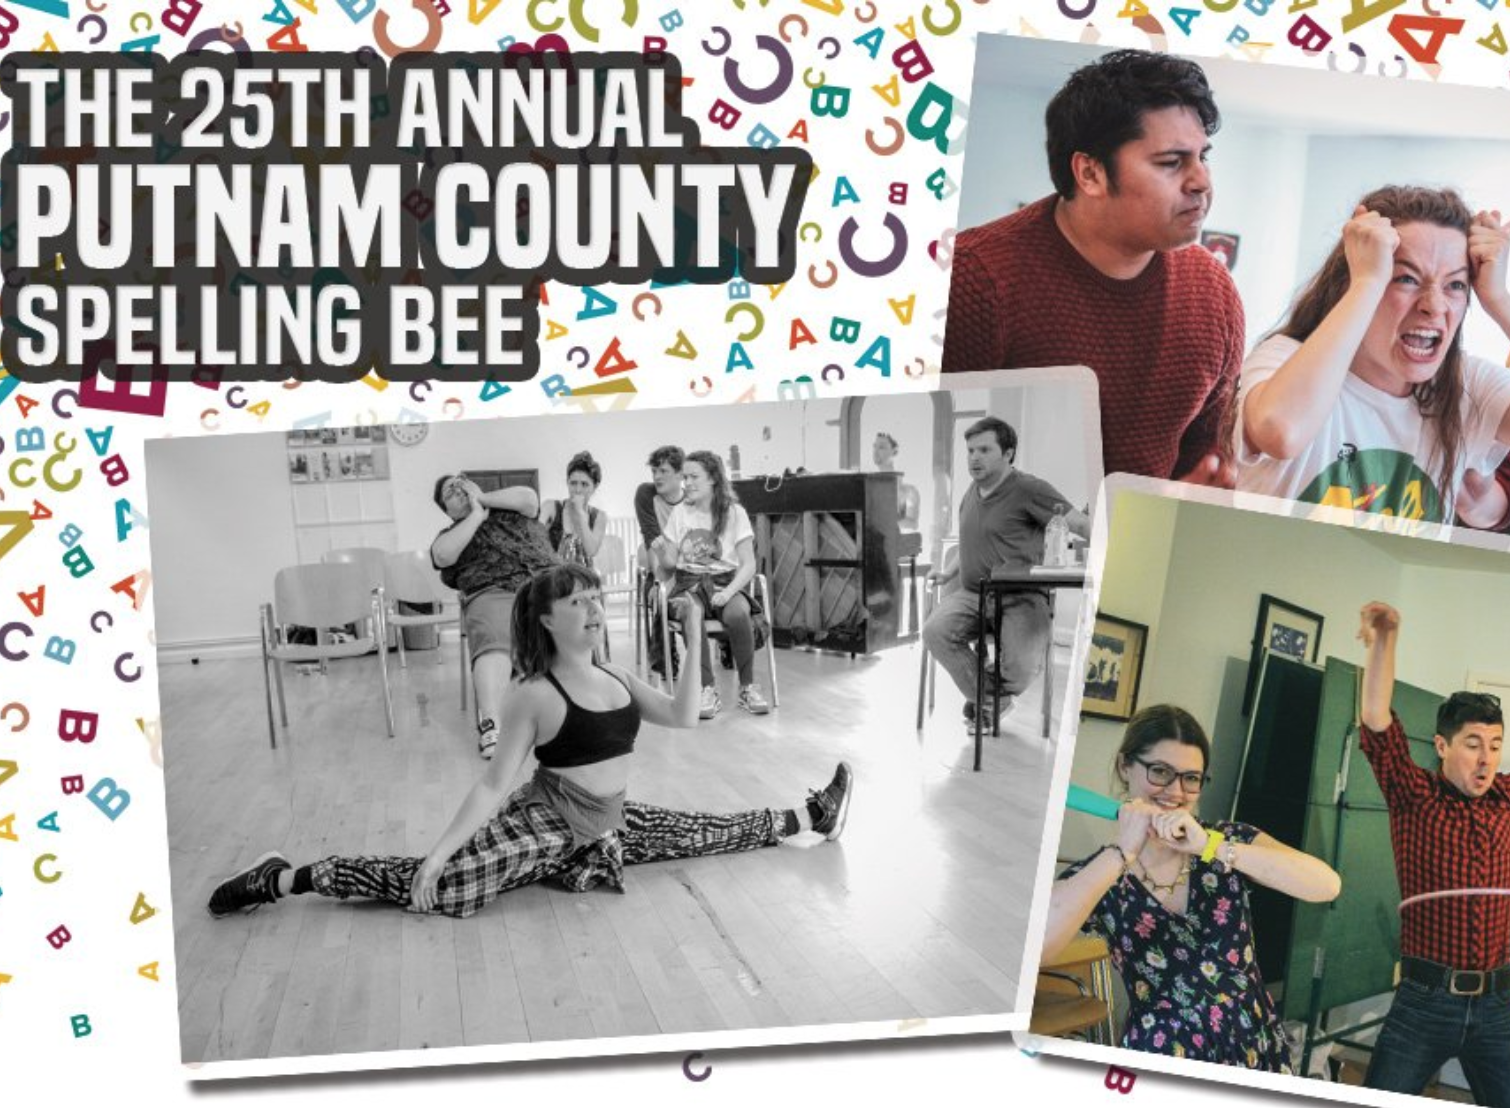 are-you-ready-spellers-here-s-who-s-competing-in-the-25th-annual-putnam-county-spelling-bee-at-drayton-arms